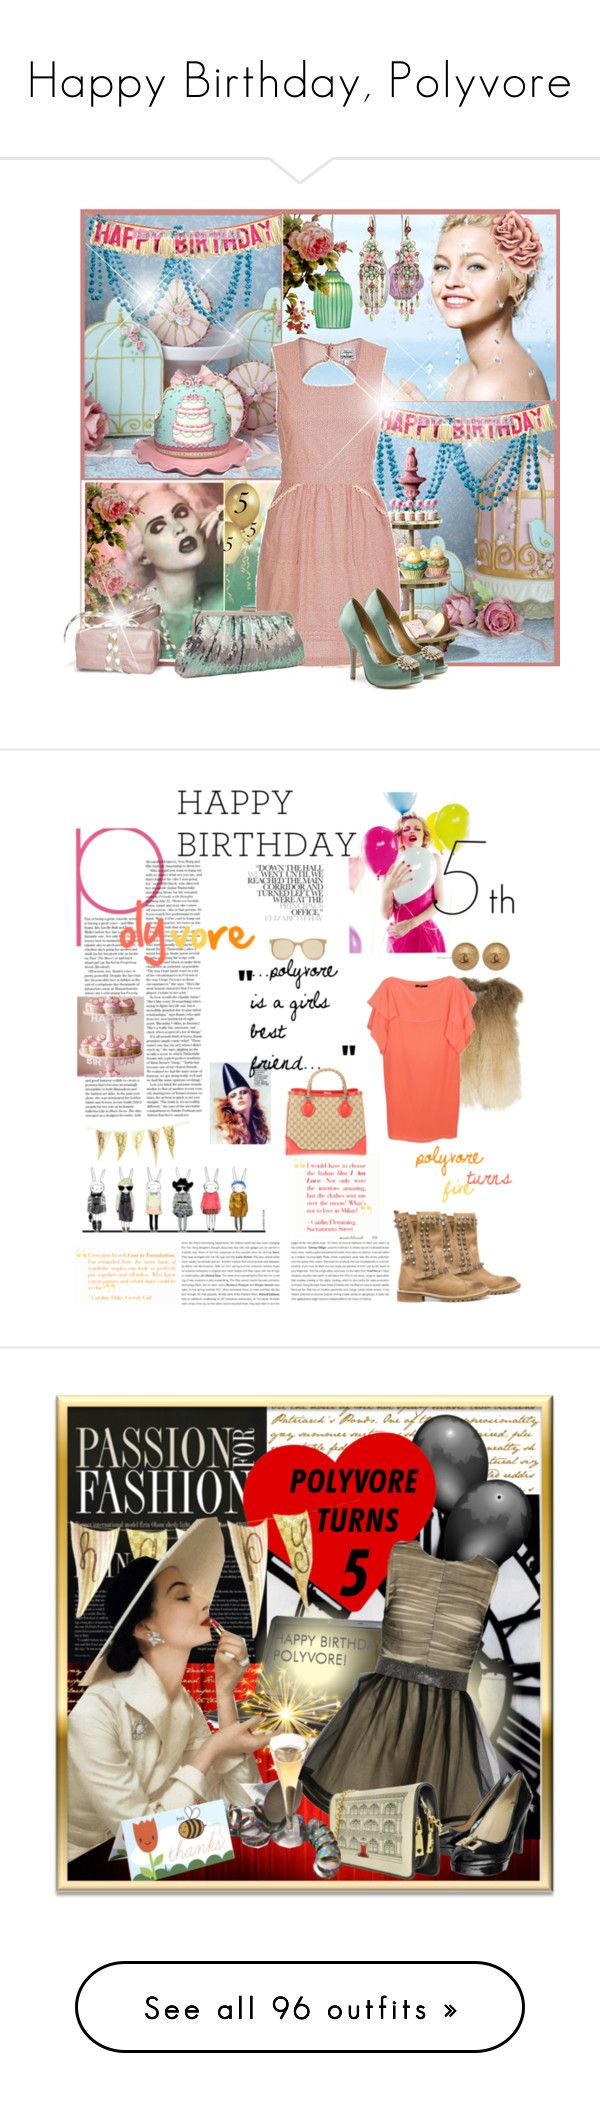 """Happy Birthday, Polyvore"" by jodente ❤ liked on Polyvore featuring Confezioni Crosby, Jessica McClintock, Badgley Mischka, Zara, Matthew Williamson, Chanel, Gucci, Prism, Dolce&Gabbana and Rawlings"